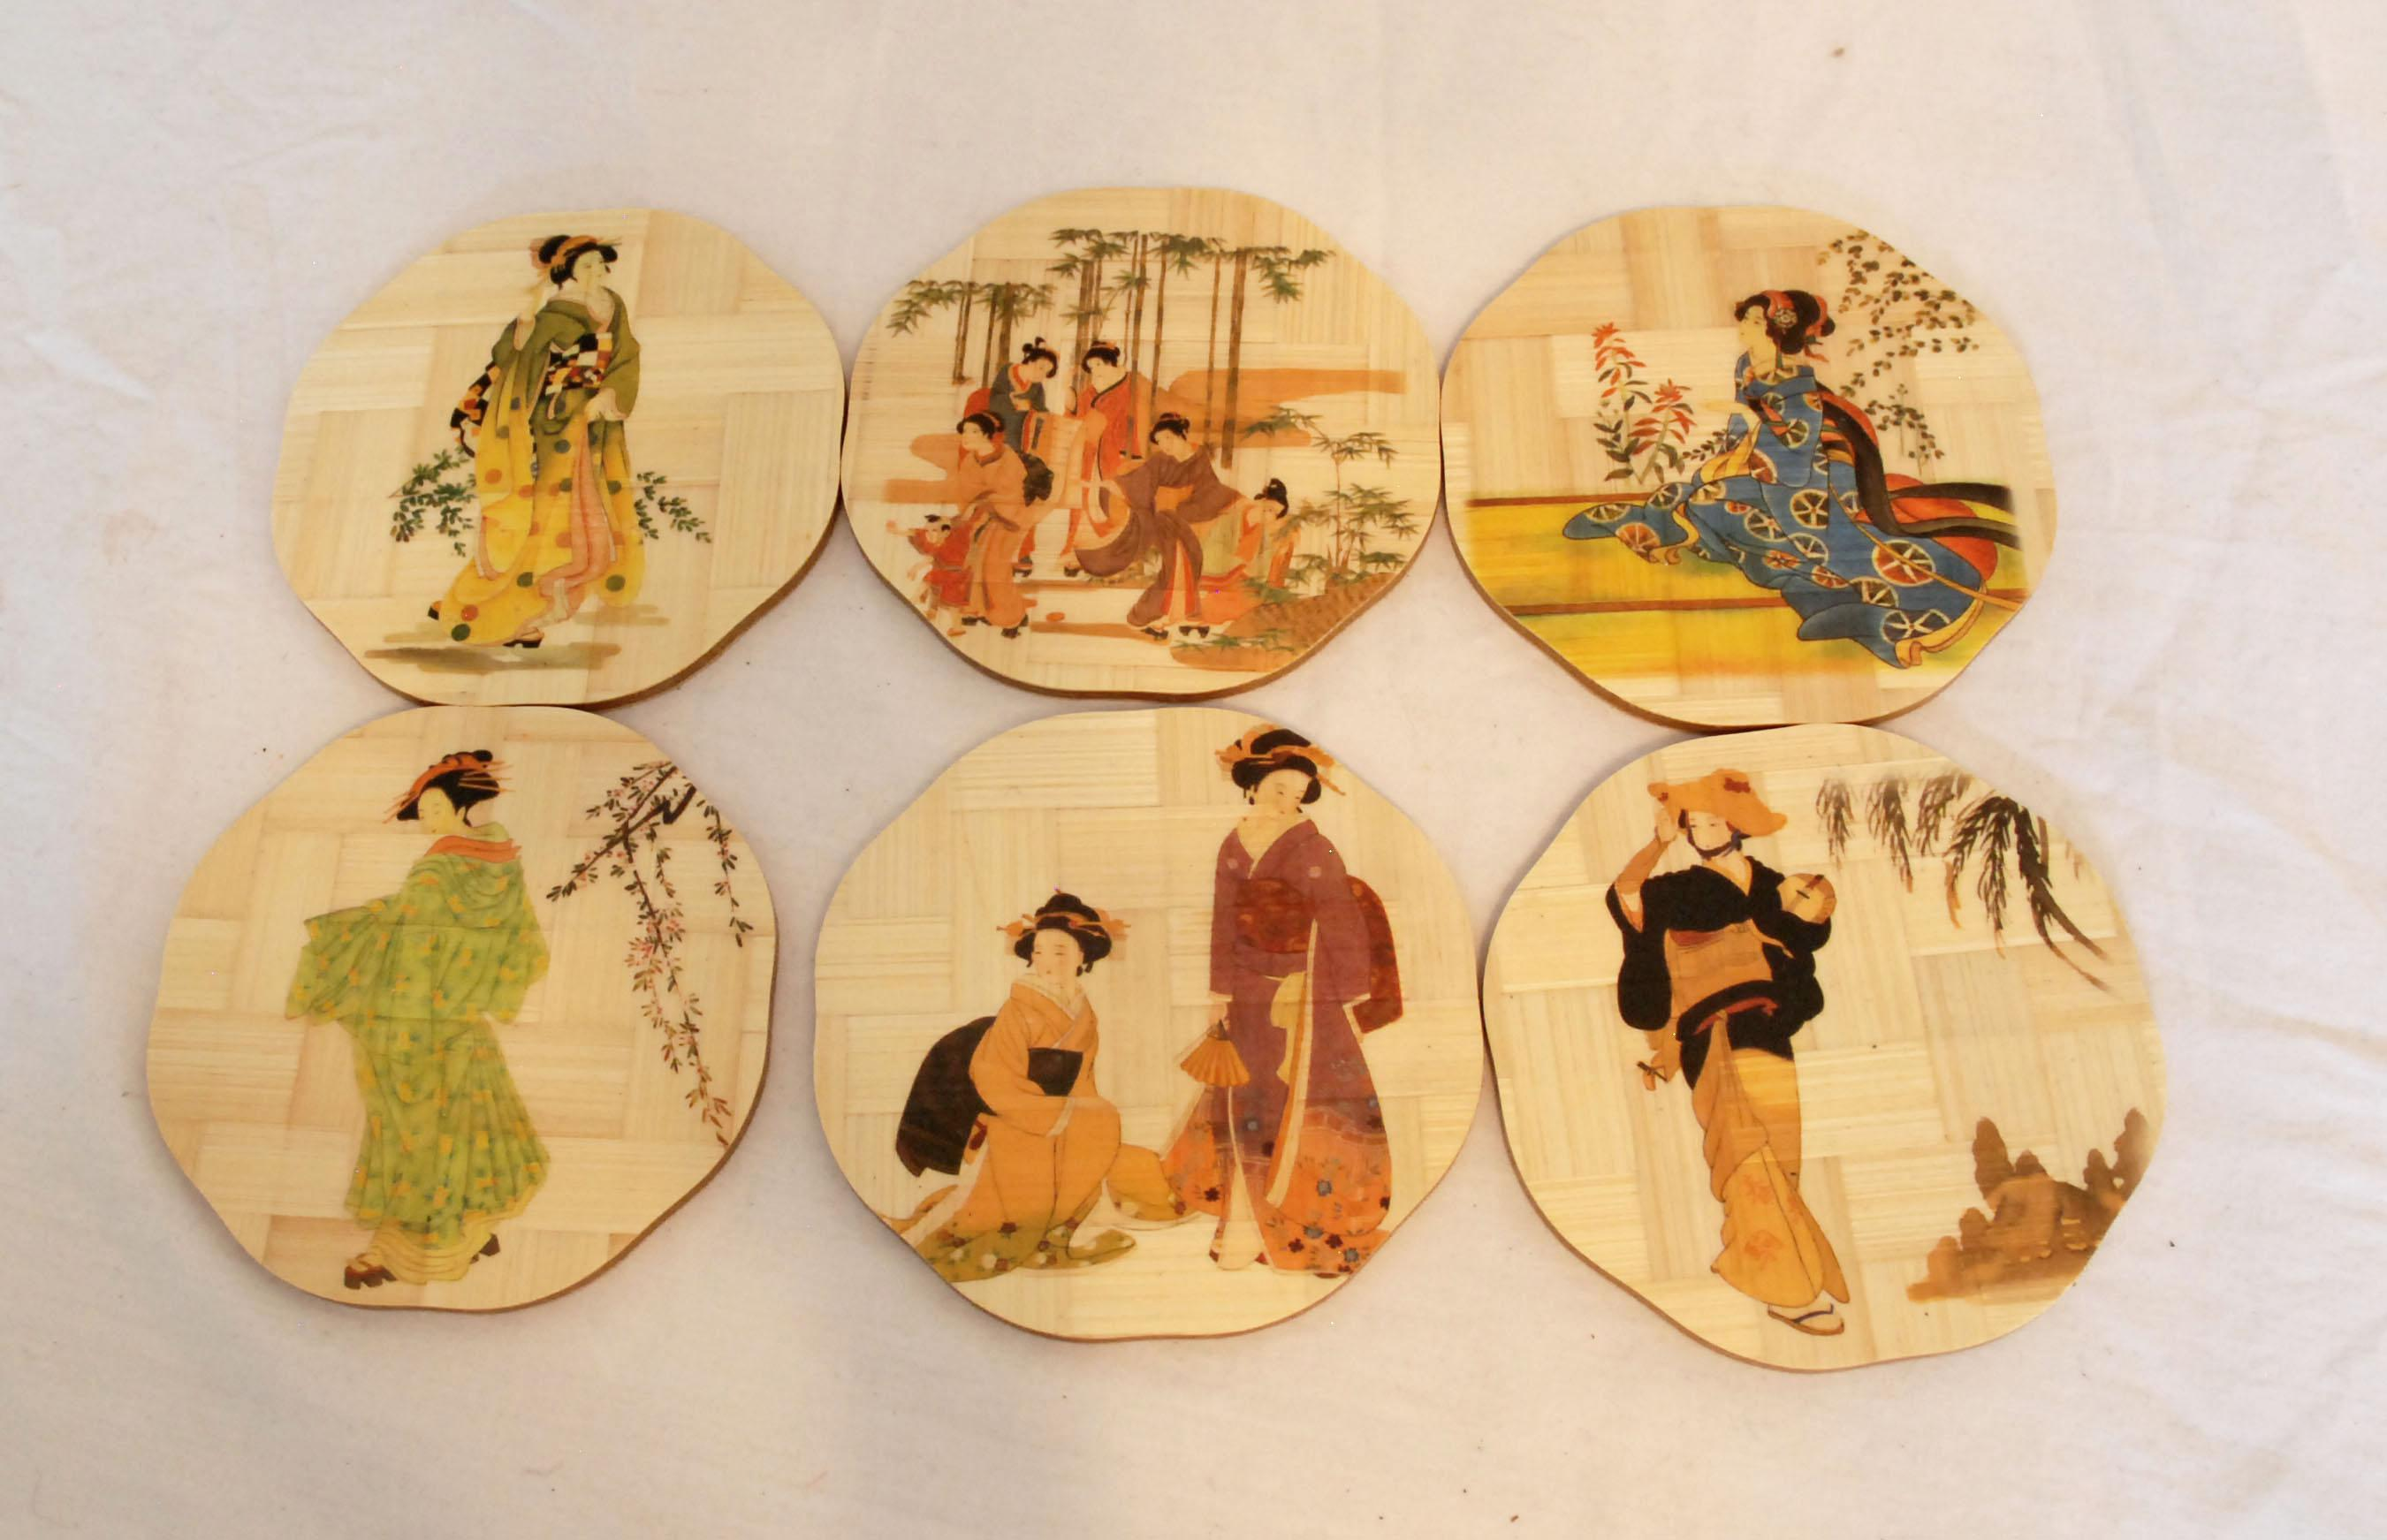 Mid-Century Chinese Bamboo Plates and Coasters - Set of 17 - Image 7 of  sc 1 st  Chairish & Mid-Century Chinese Bamboo Plates and Coasters - Set of 17 | Chairish